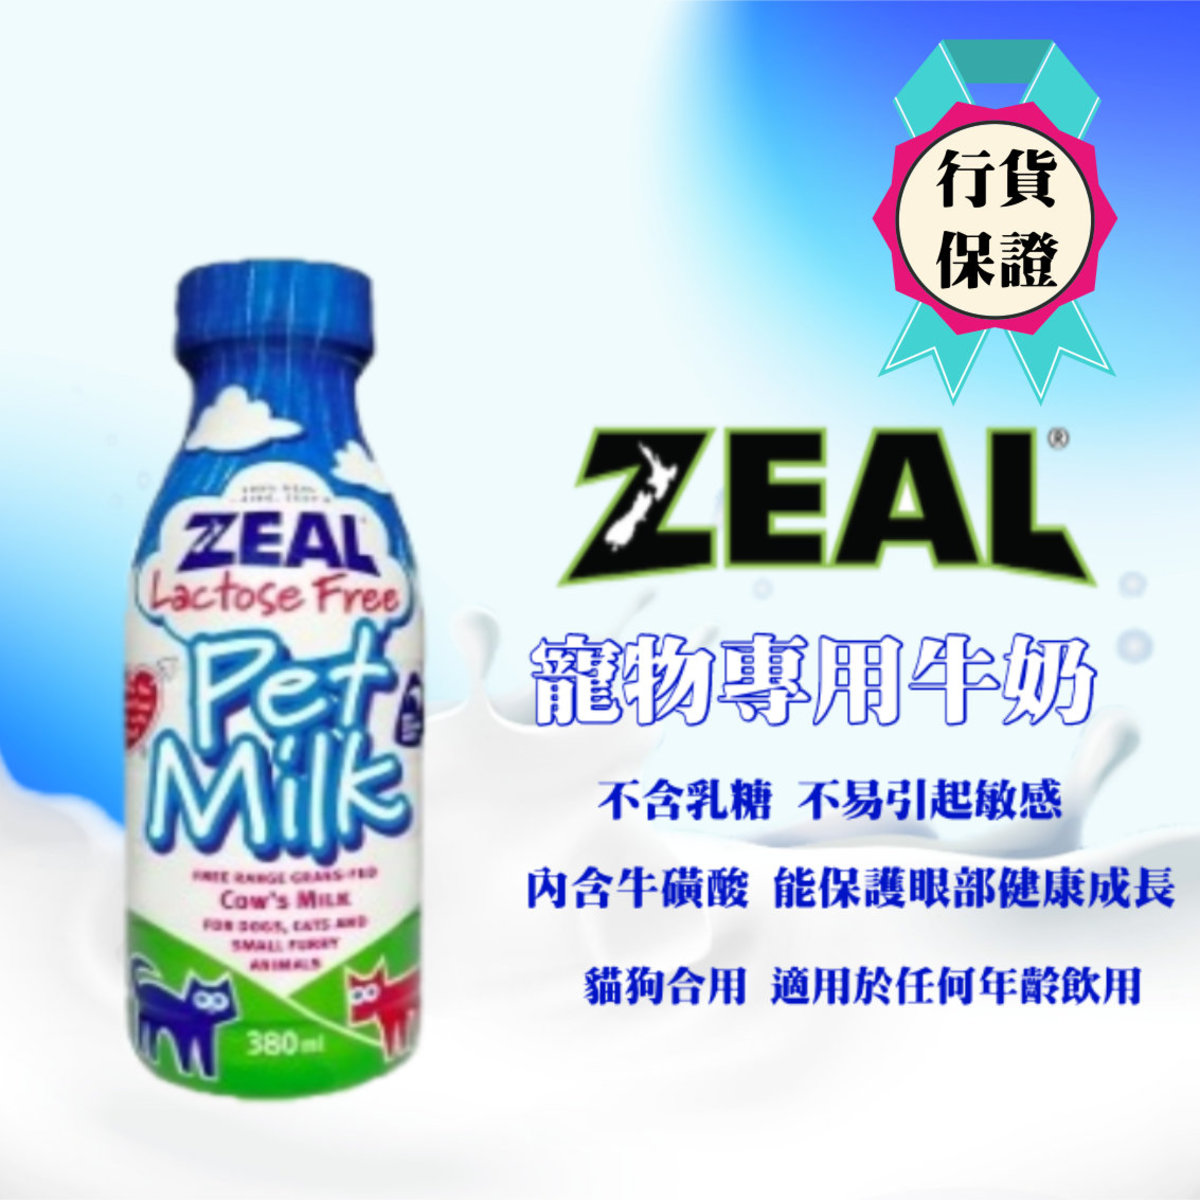 Pet milk 380ml (for cats and dogs)